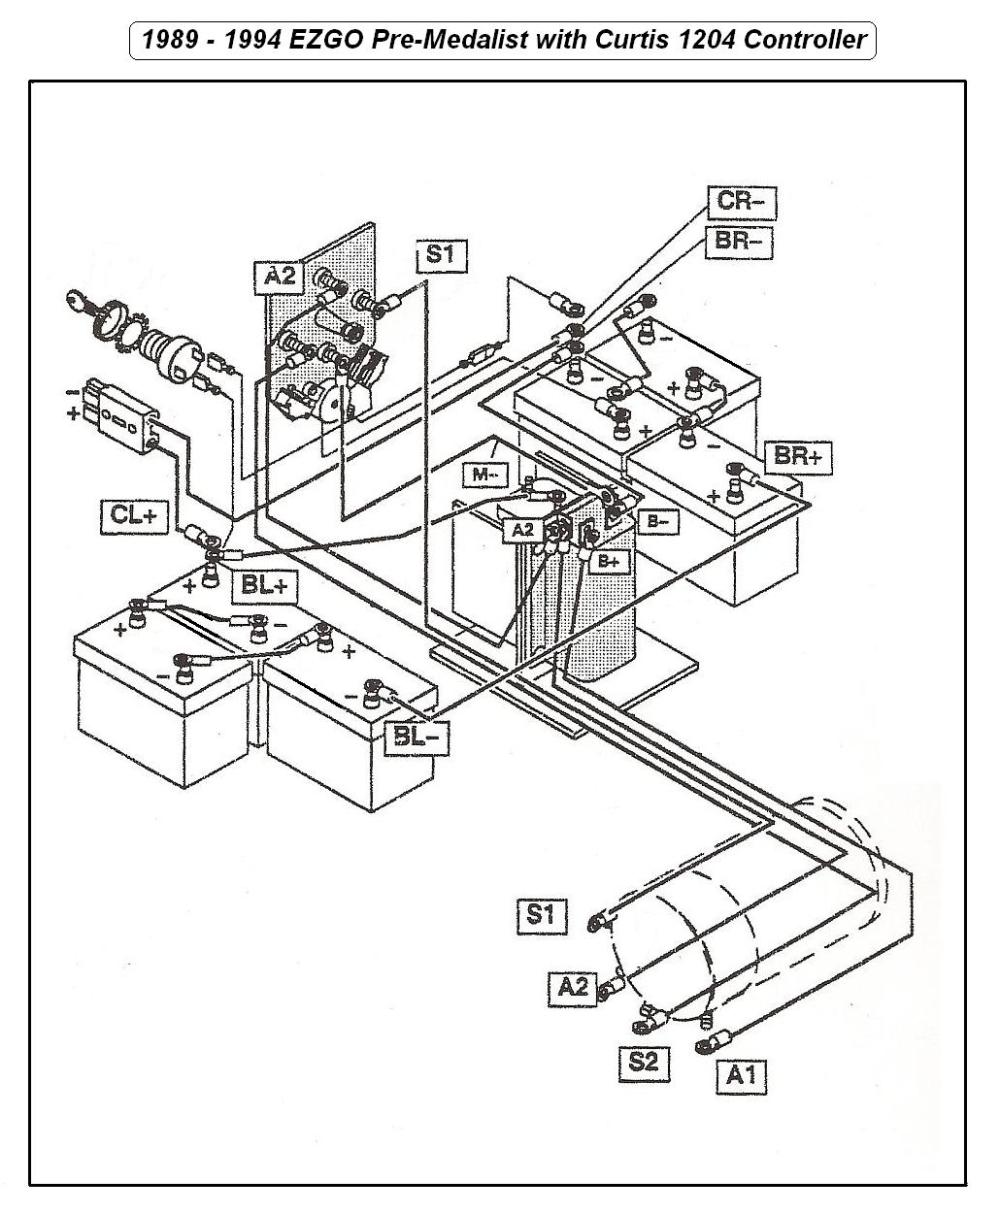 medium resolution of 1987 48 volt ezgo solenoid wiring diagram simple wiring diagrams 48 volt golf cart wiring golf cart 48 volt wiring